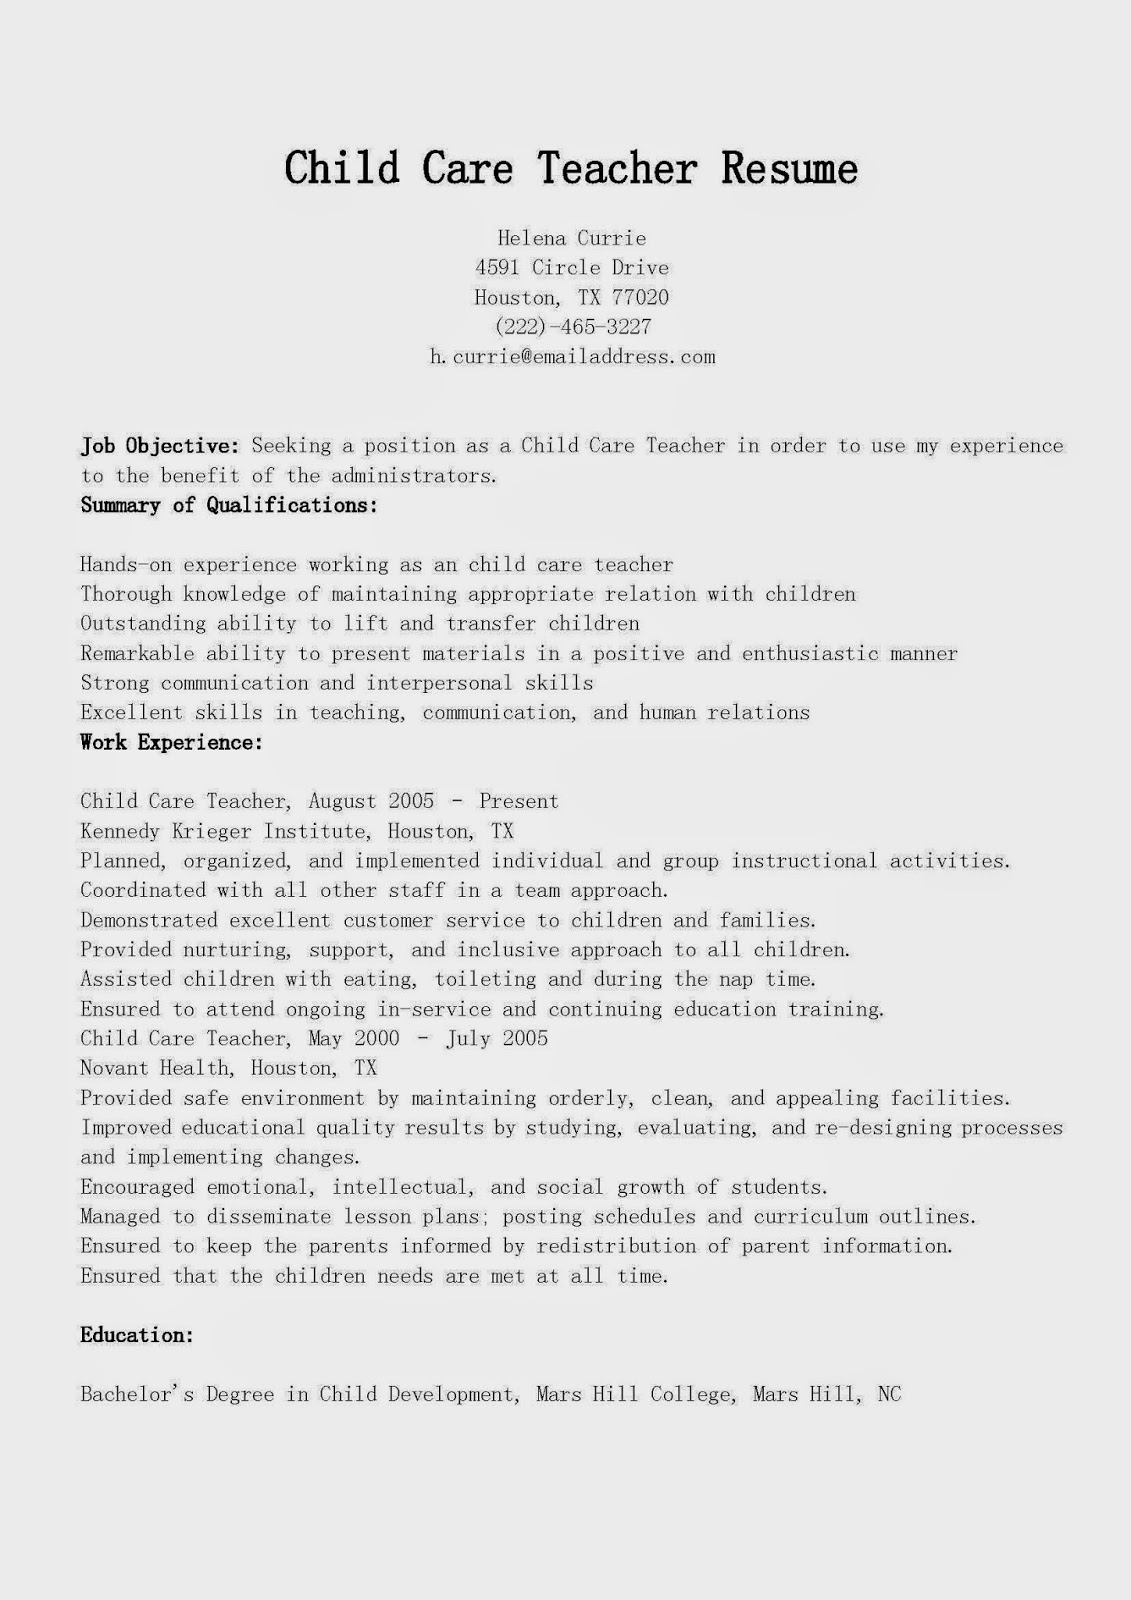 Resume Resume Examples For Child Care childcare resume sample breakupus mesmerizing free child care samples 05052017